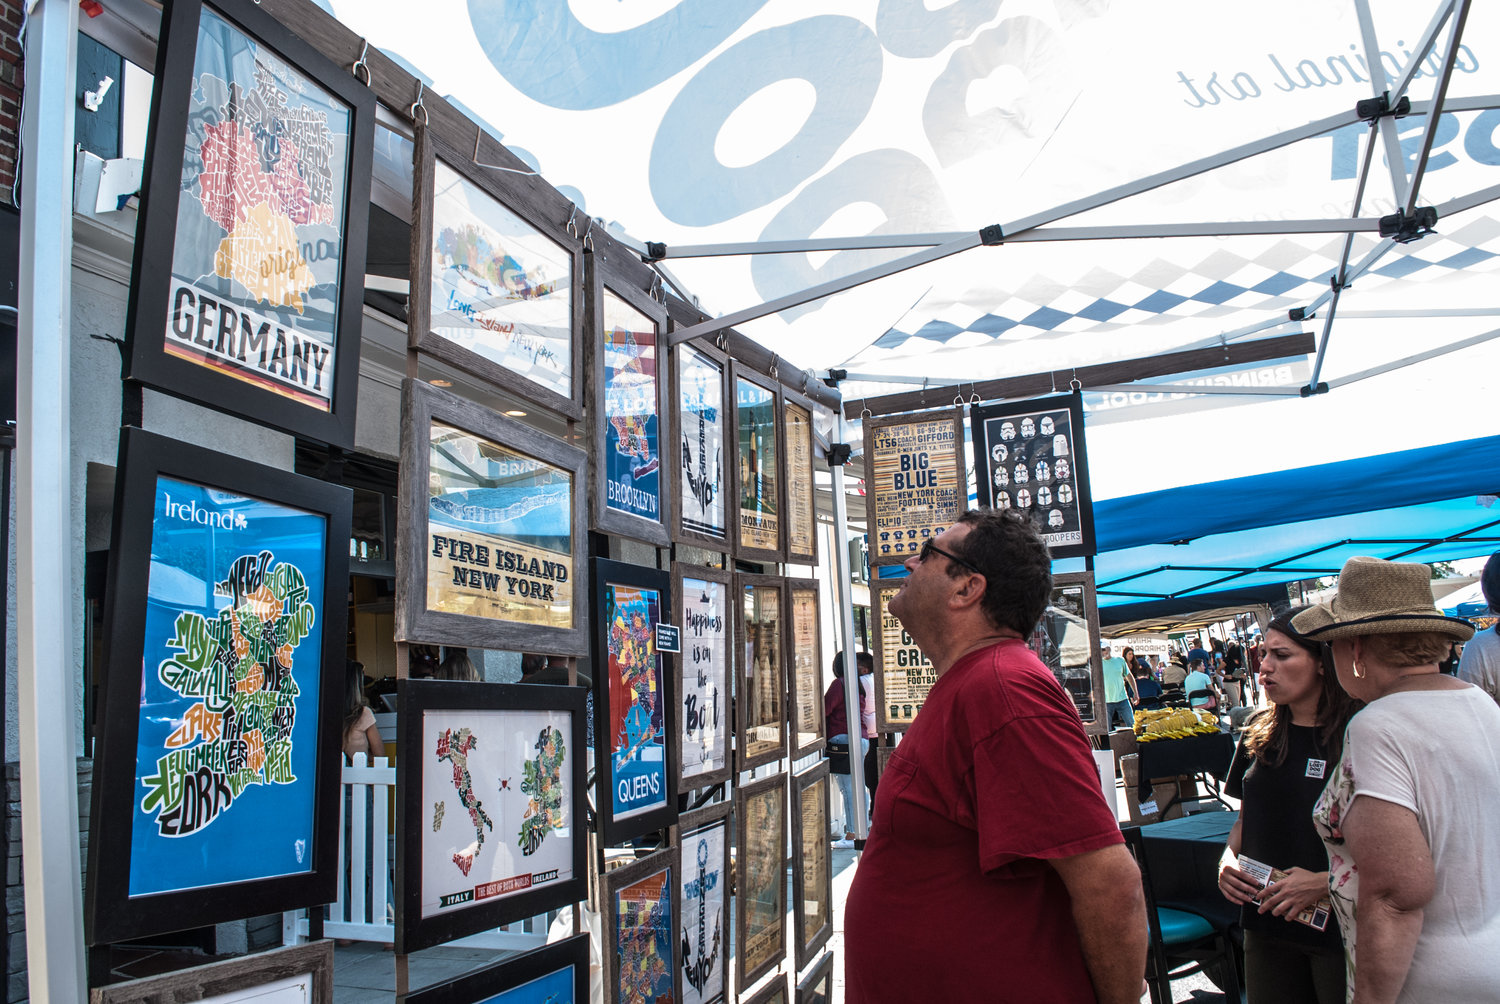 Steve Cosares takes an interest in the graphic designs of many LI towns at the tent of The Lost Dog Art & Frame Co.